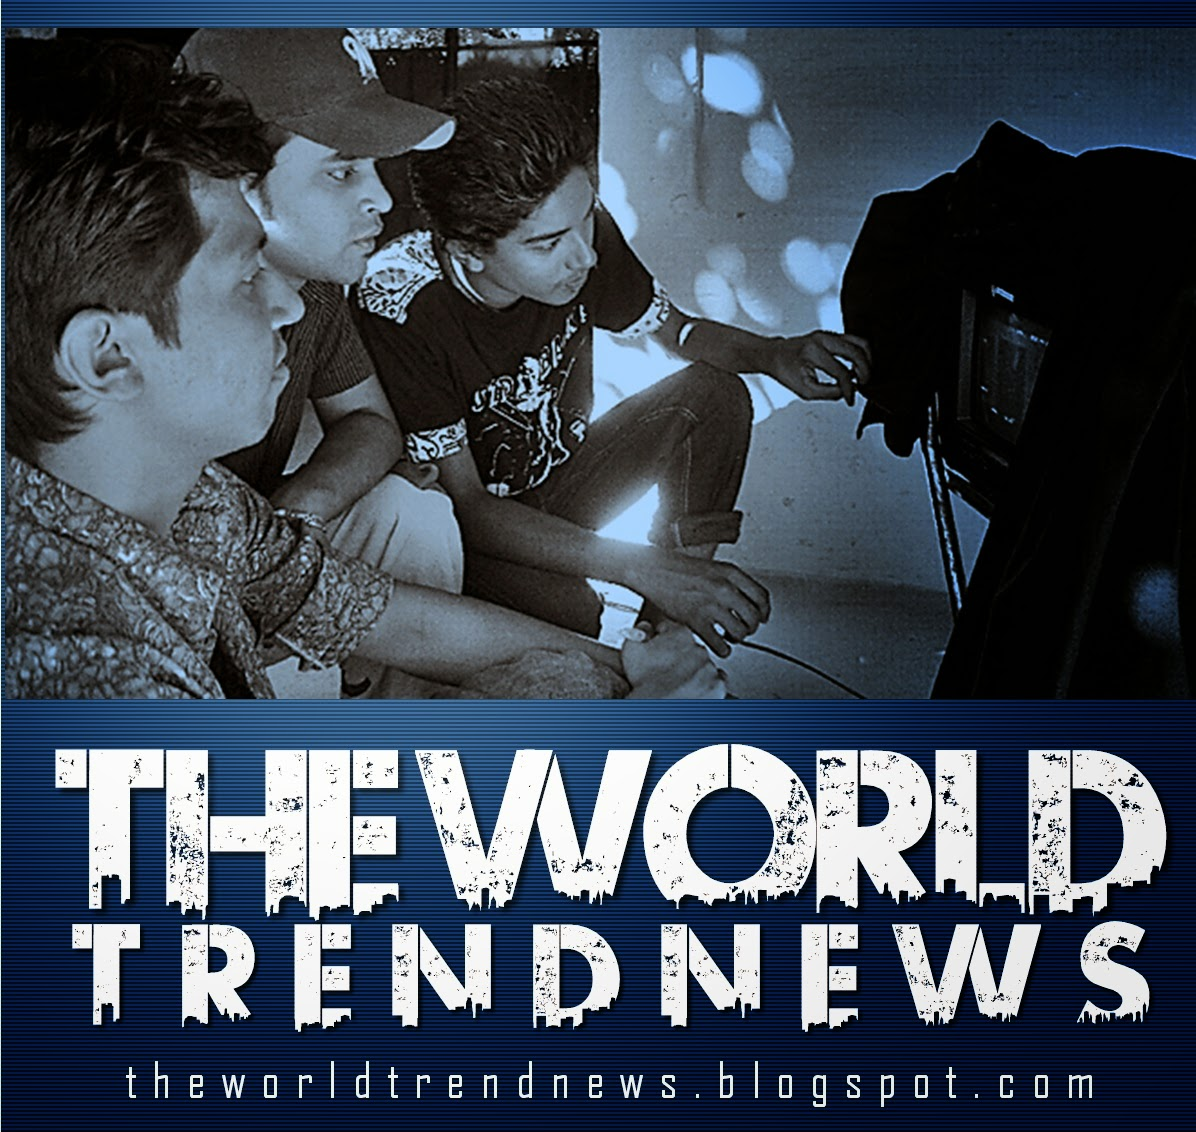 The World Trend News, www.theworldtrendnews.blogspot.com  encourages you to add comment to our discussions. You may not post any unlawful, bad, threatening, anti-Islam, libelous, anti-religion, defamatory, obscene, pornographic, 18+ info or other material that would violate the law of online news portal. Please note that The World Trend News - www.theworldtrendnews.blogspot.com  makes reasonable efforts to review all comments prior to posting and The World Trend News - www.theworldtrendnews.blogspot.com  may edit comments for clarity or to keep out questionable or off-topic material anytime. All comments of The World Trend News - www.theworldtrendnews.blogspot.com  should be relevant to the post and remain respectful of other authors and commenters. By submitting your comment, you hereby give The World Trend News - www.theworldtrendnews.blogspot.com the right, but not the obligation, to post, air, edit, exhibit, telecast, cablecast, webcast, re-use, publish, reproduce, use, license, print, distribute or otherwise use your comment(s) and accompanying personal identifying information via all forms of media now known or hereafter devised, worldwide, in perpetuity.